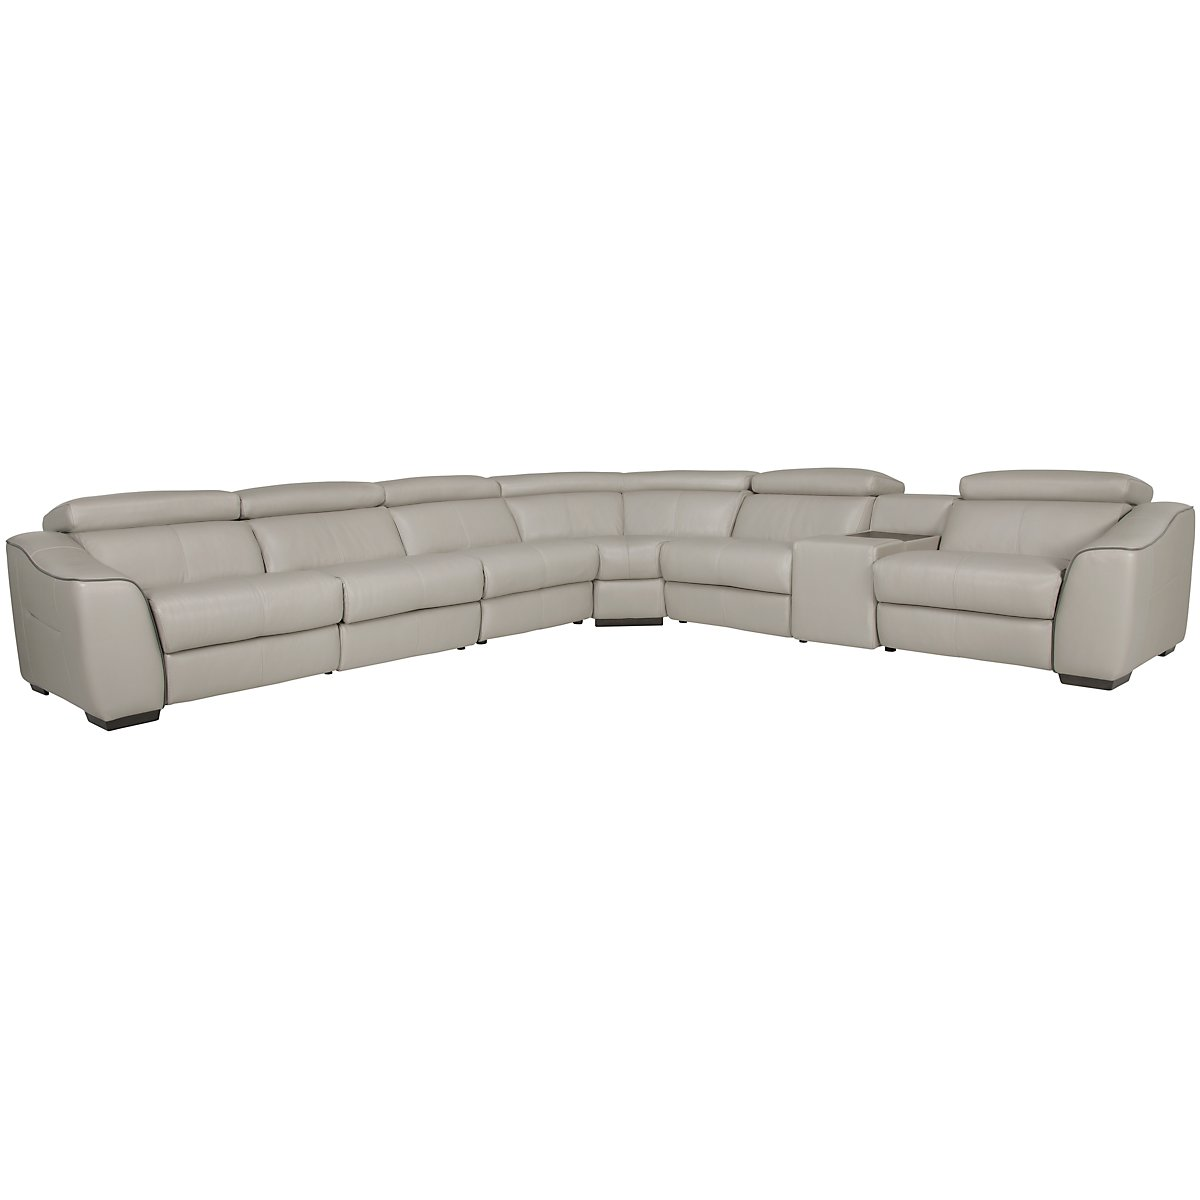 Alessi3 Lt Gray Leather & Vinyl Large Two-Arm Power Reclining Sectional